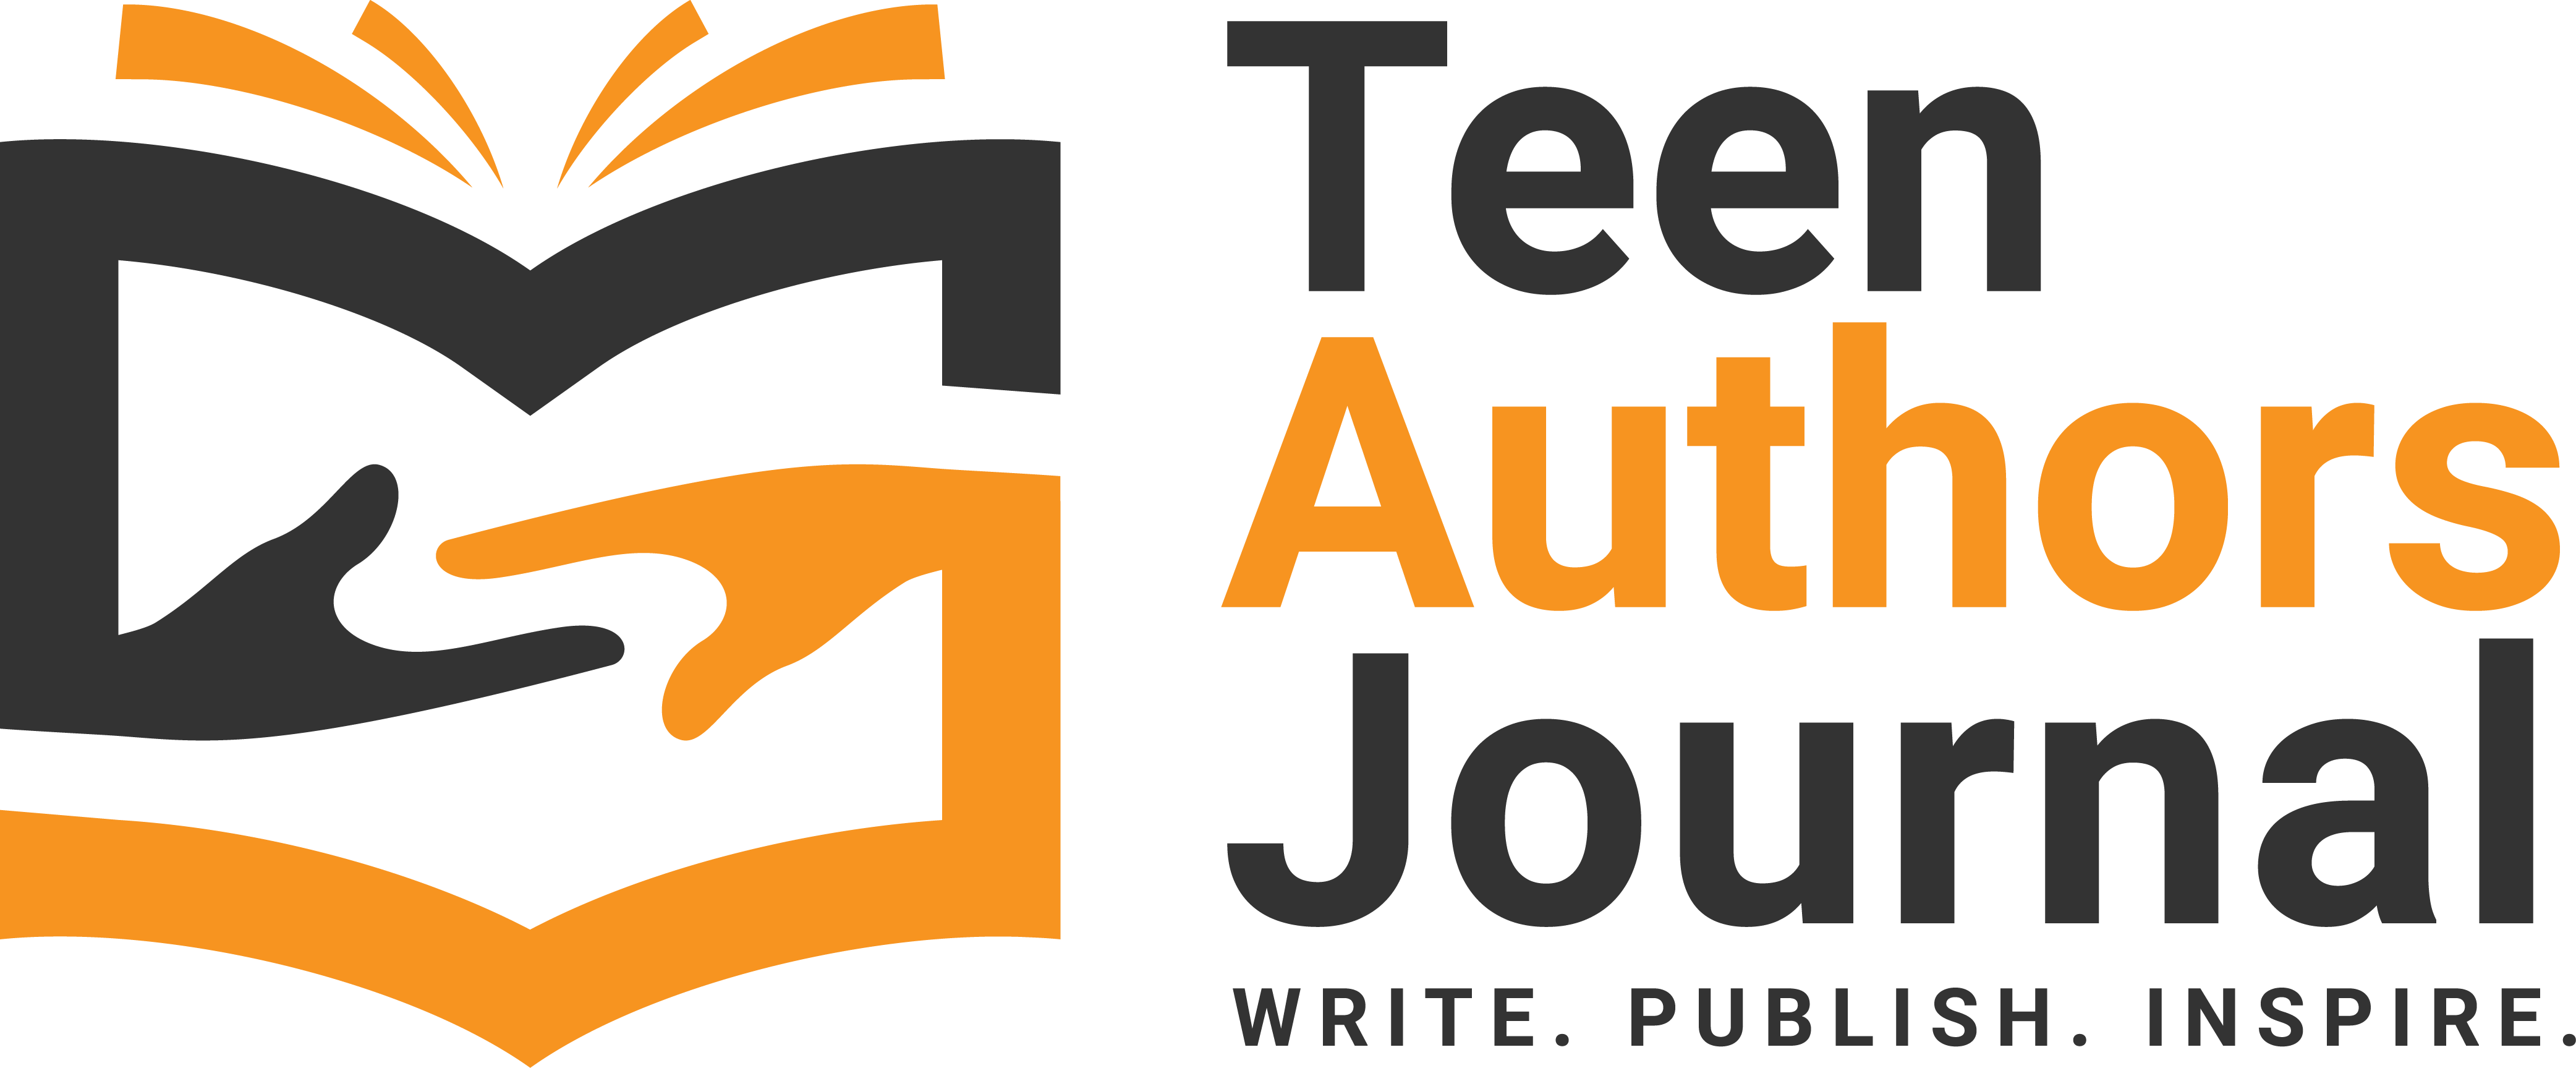 Teen authors' blog site needs a fresh new logo that really pops!